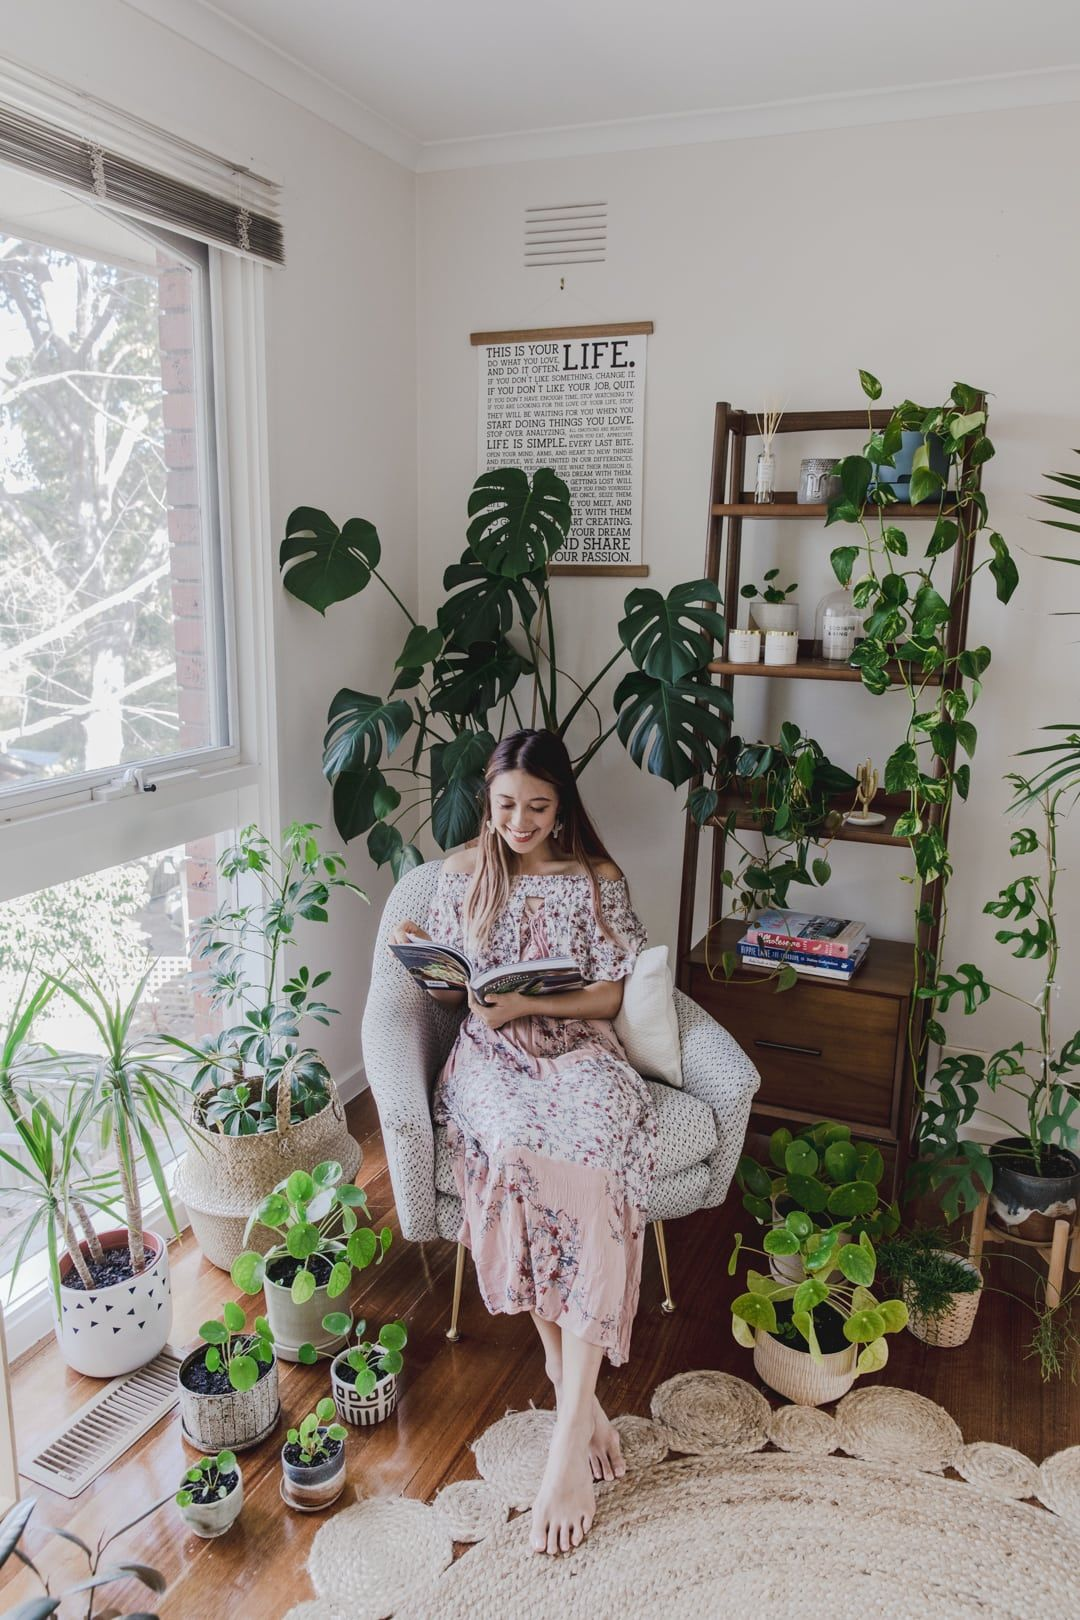 Pin By Nadia On Garden Corner Plant Reading Corner Room With Plants